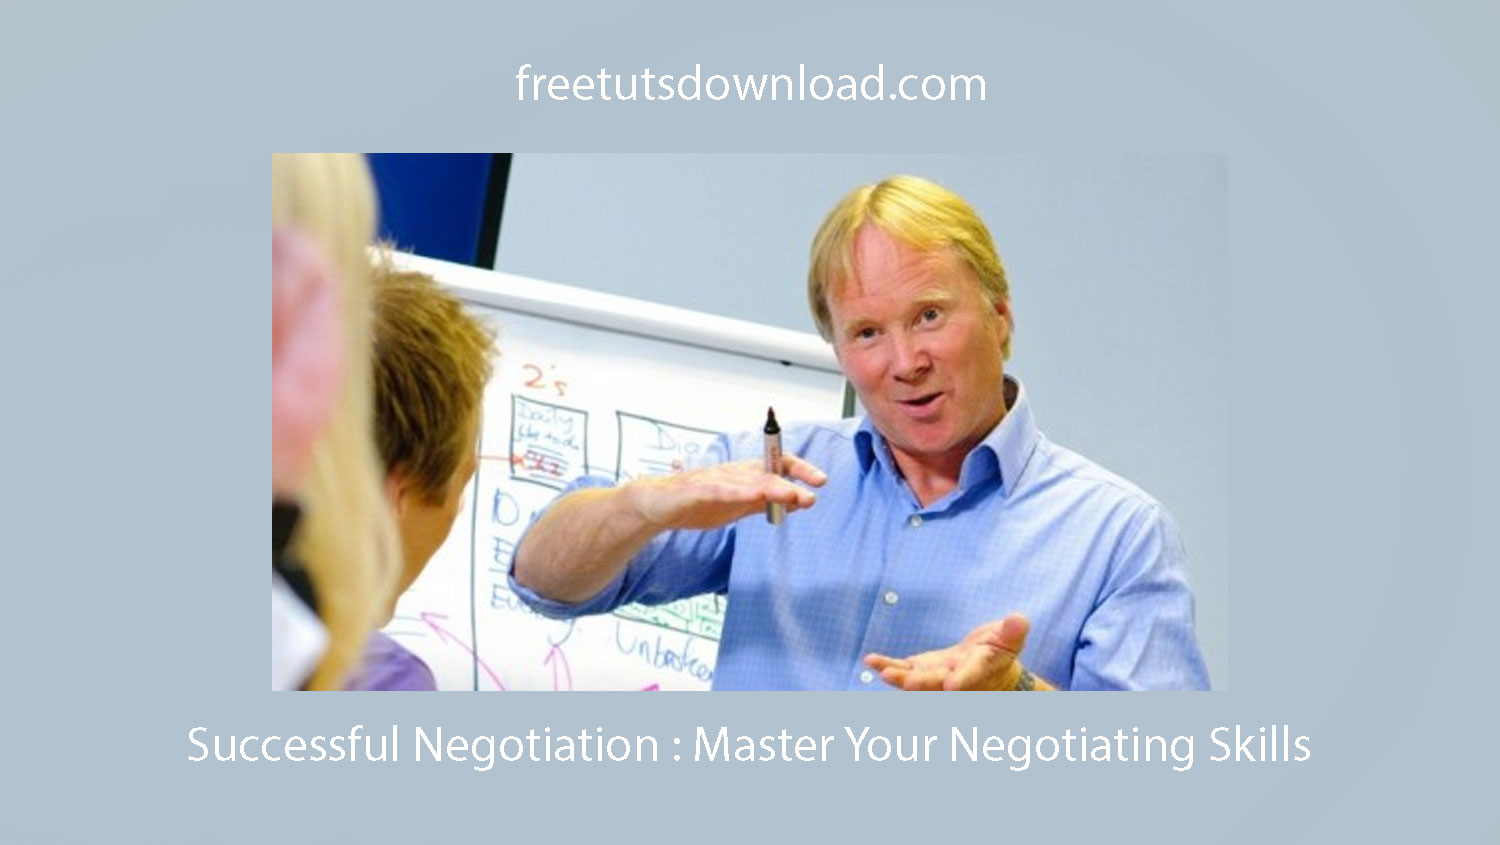 Successful Negotiation : Master Your Negotiating Skills